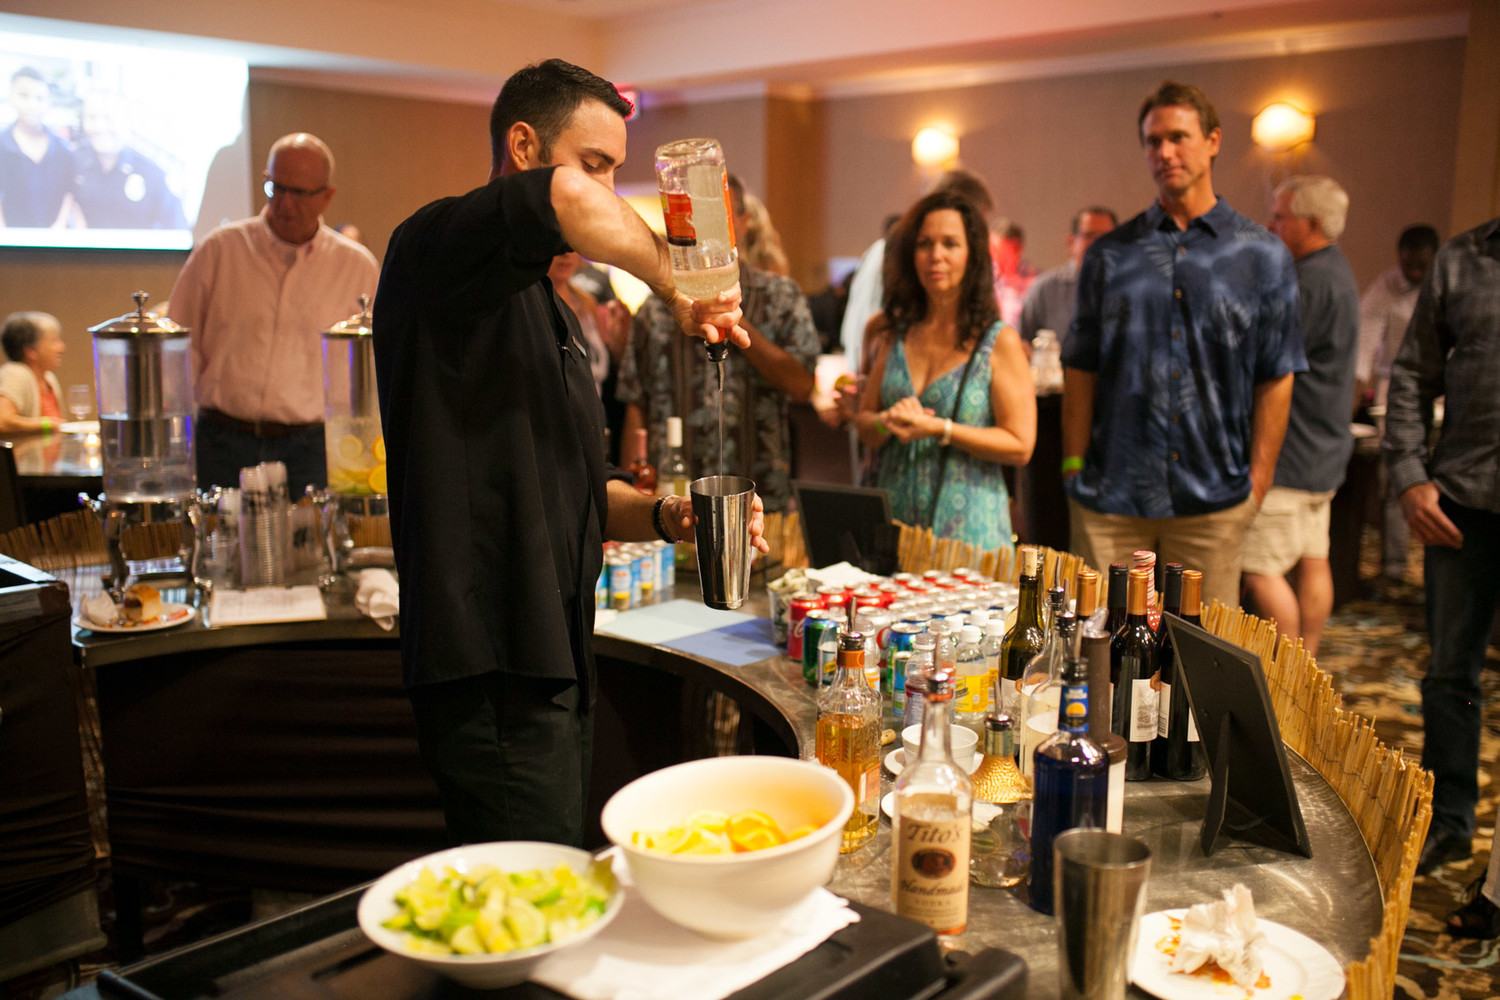 A bartender serves up one of the event's signature drinks.